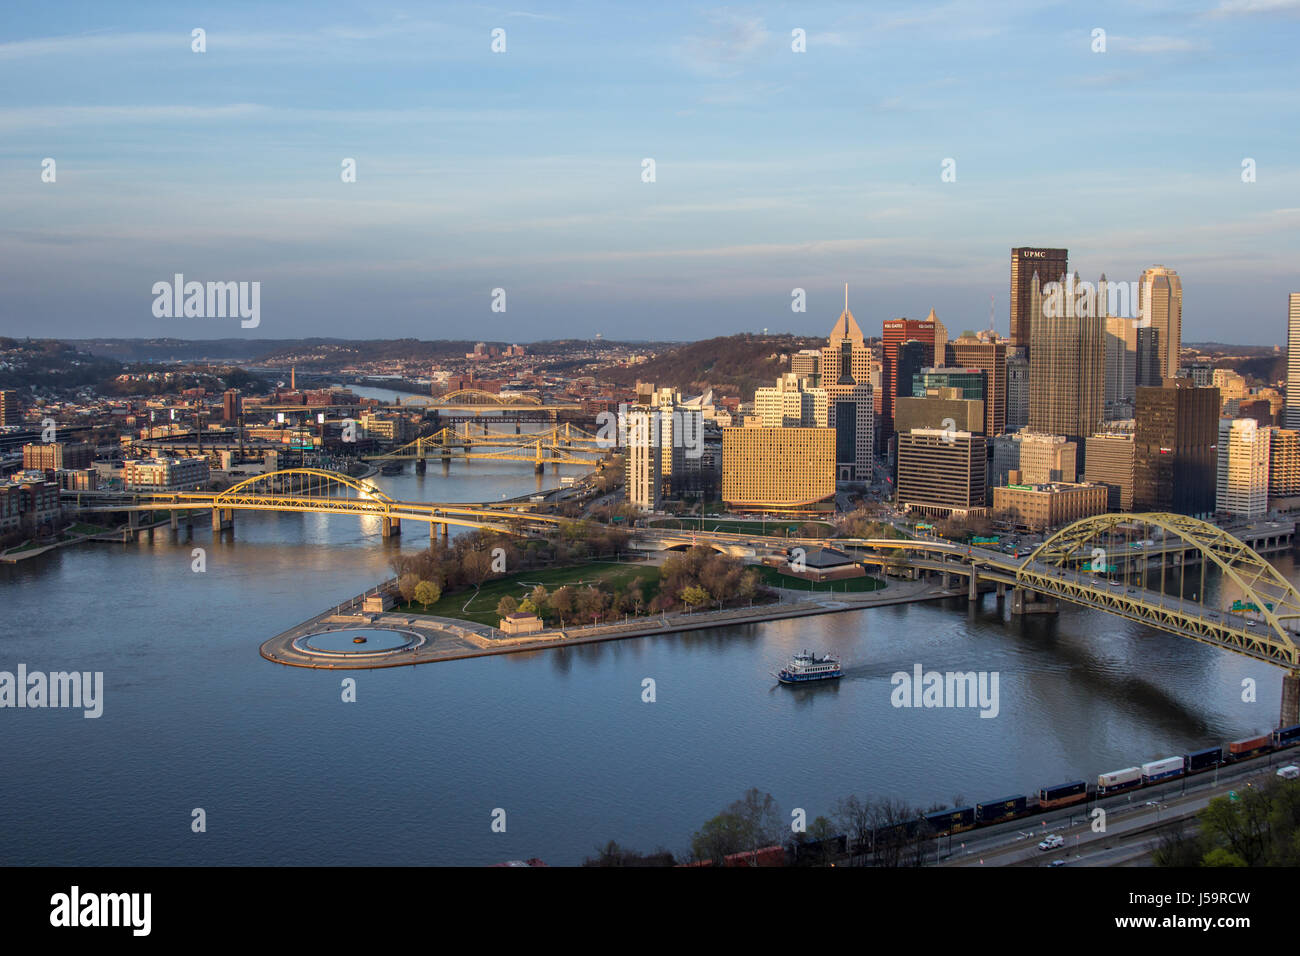 Pittsburgh city skyline from the top of the Duquesne Incline, Mount Washington at sunset with a view of all the - Stock Image